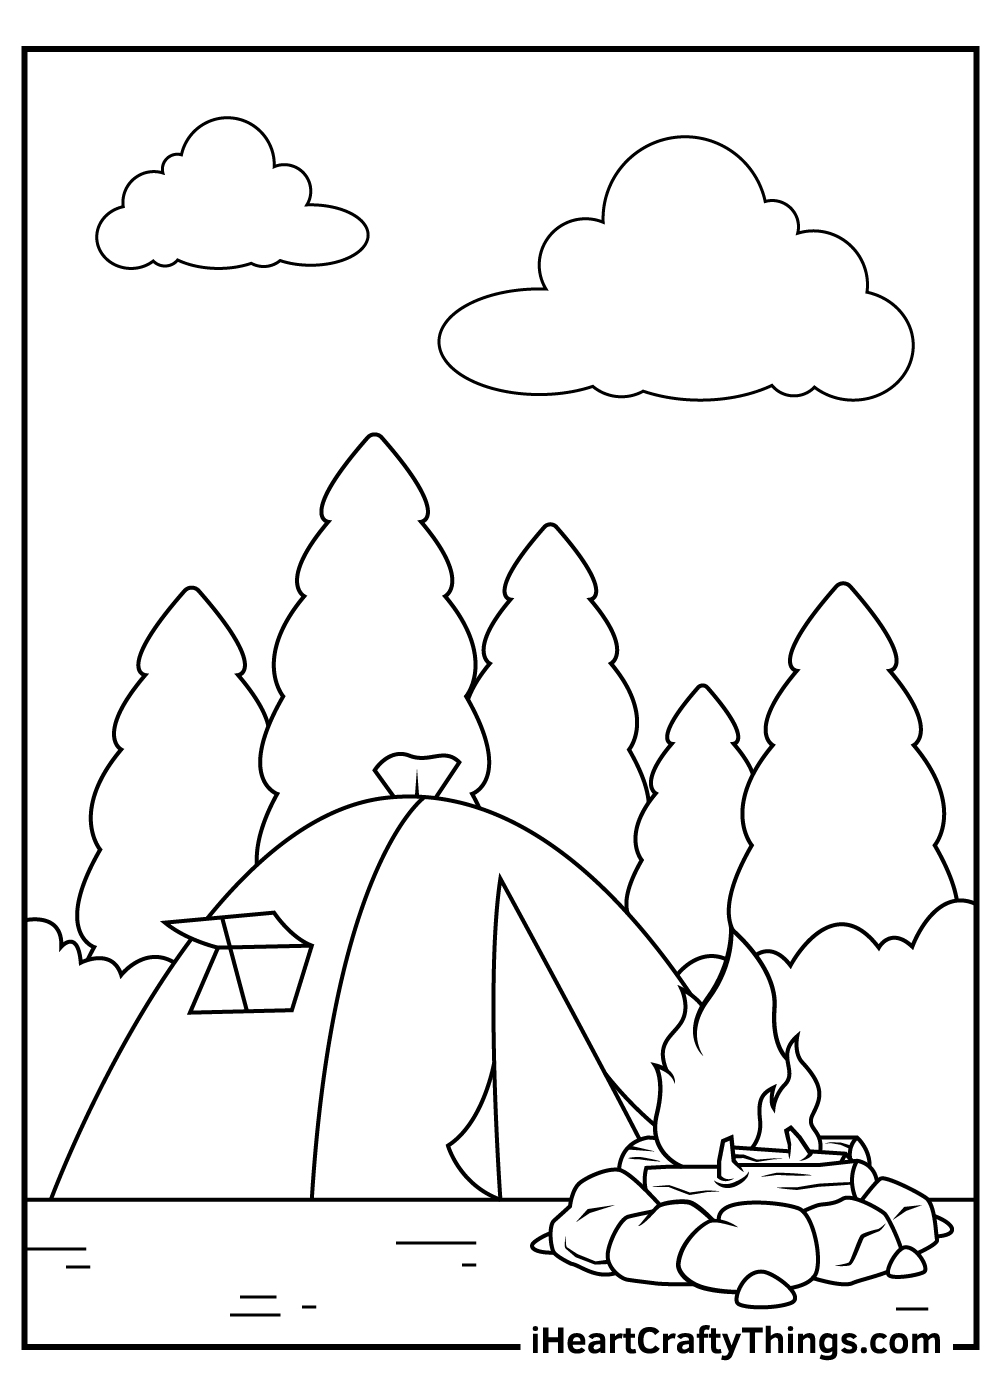 camping coloring heart crafty things treats sheet play based pet art color for teens coloring pages Camping Coloring Page